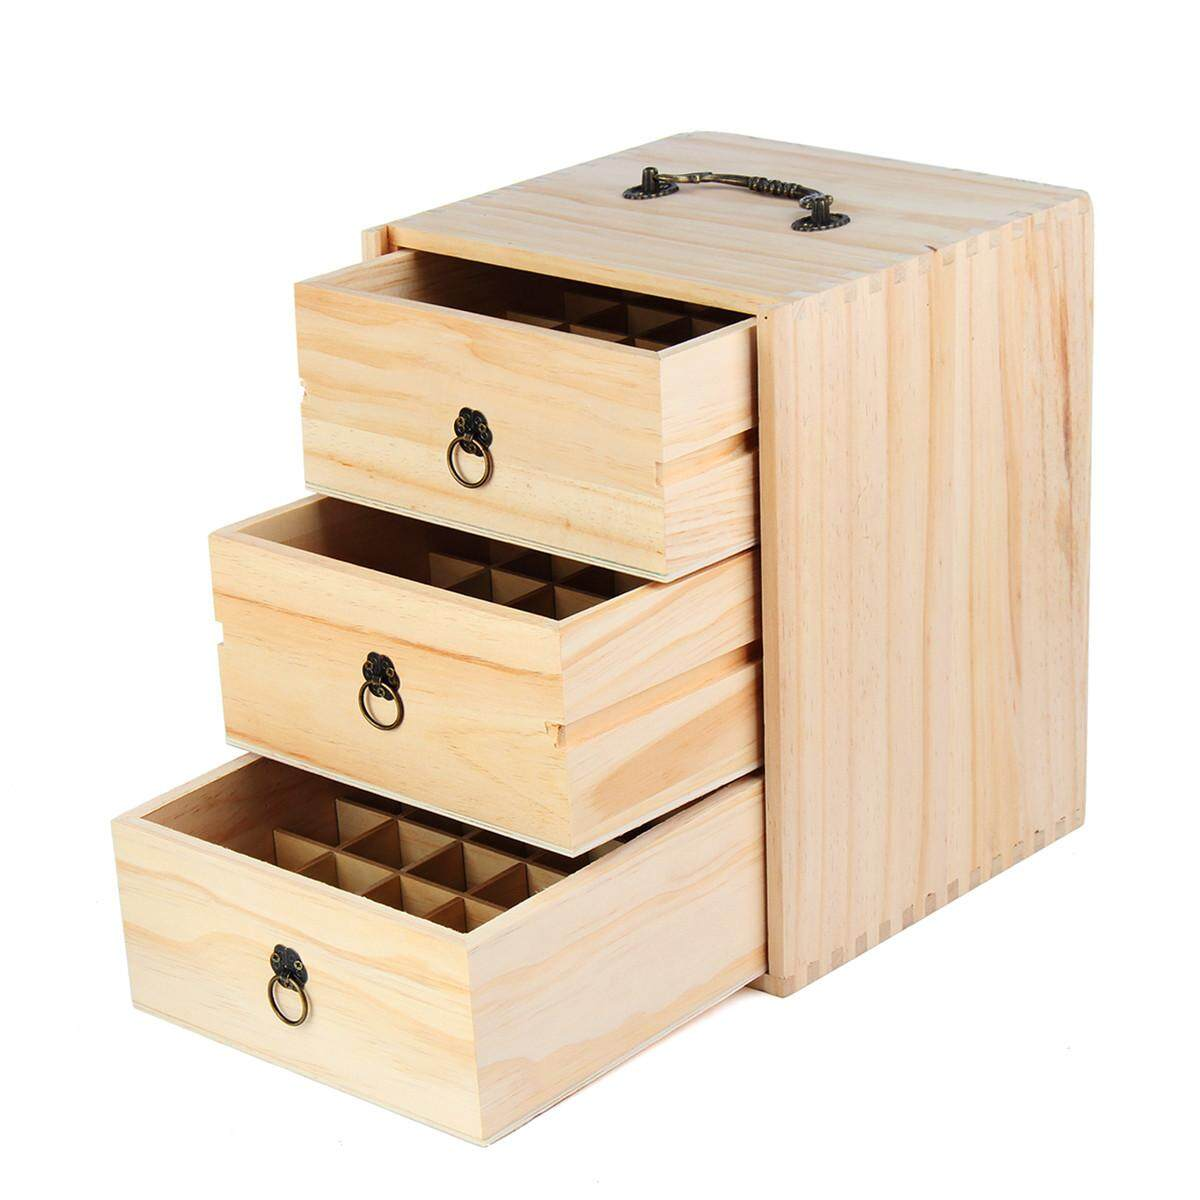 75 Slot 3 Tiers Essential Oil Wooden Box Multi Tray Carry Organizer Storage Case - intl